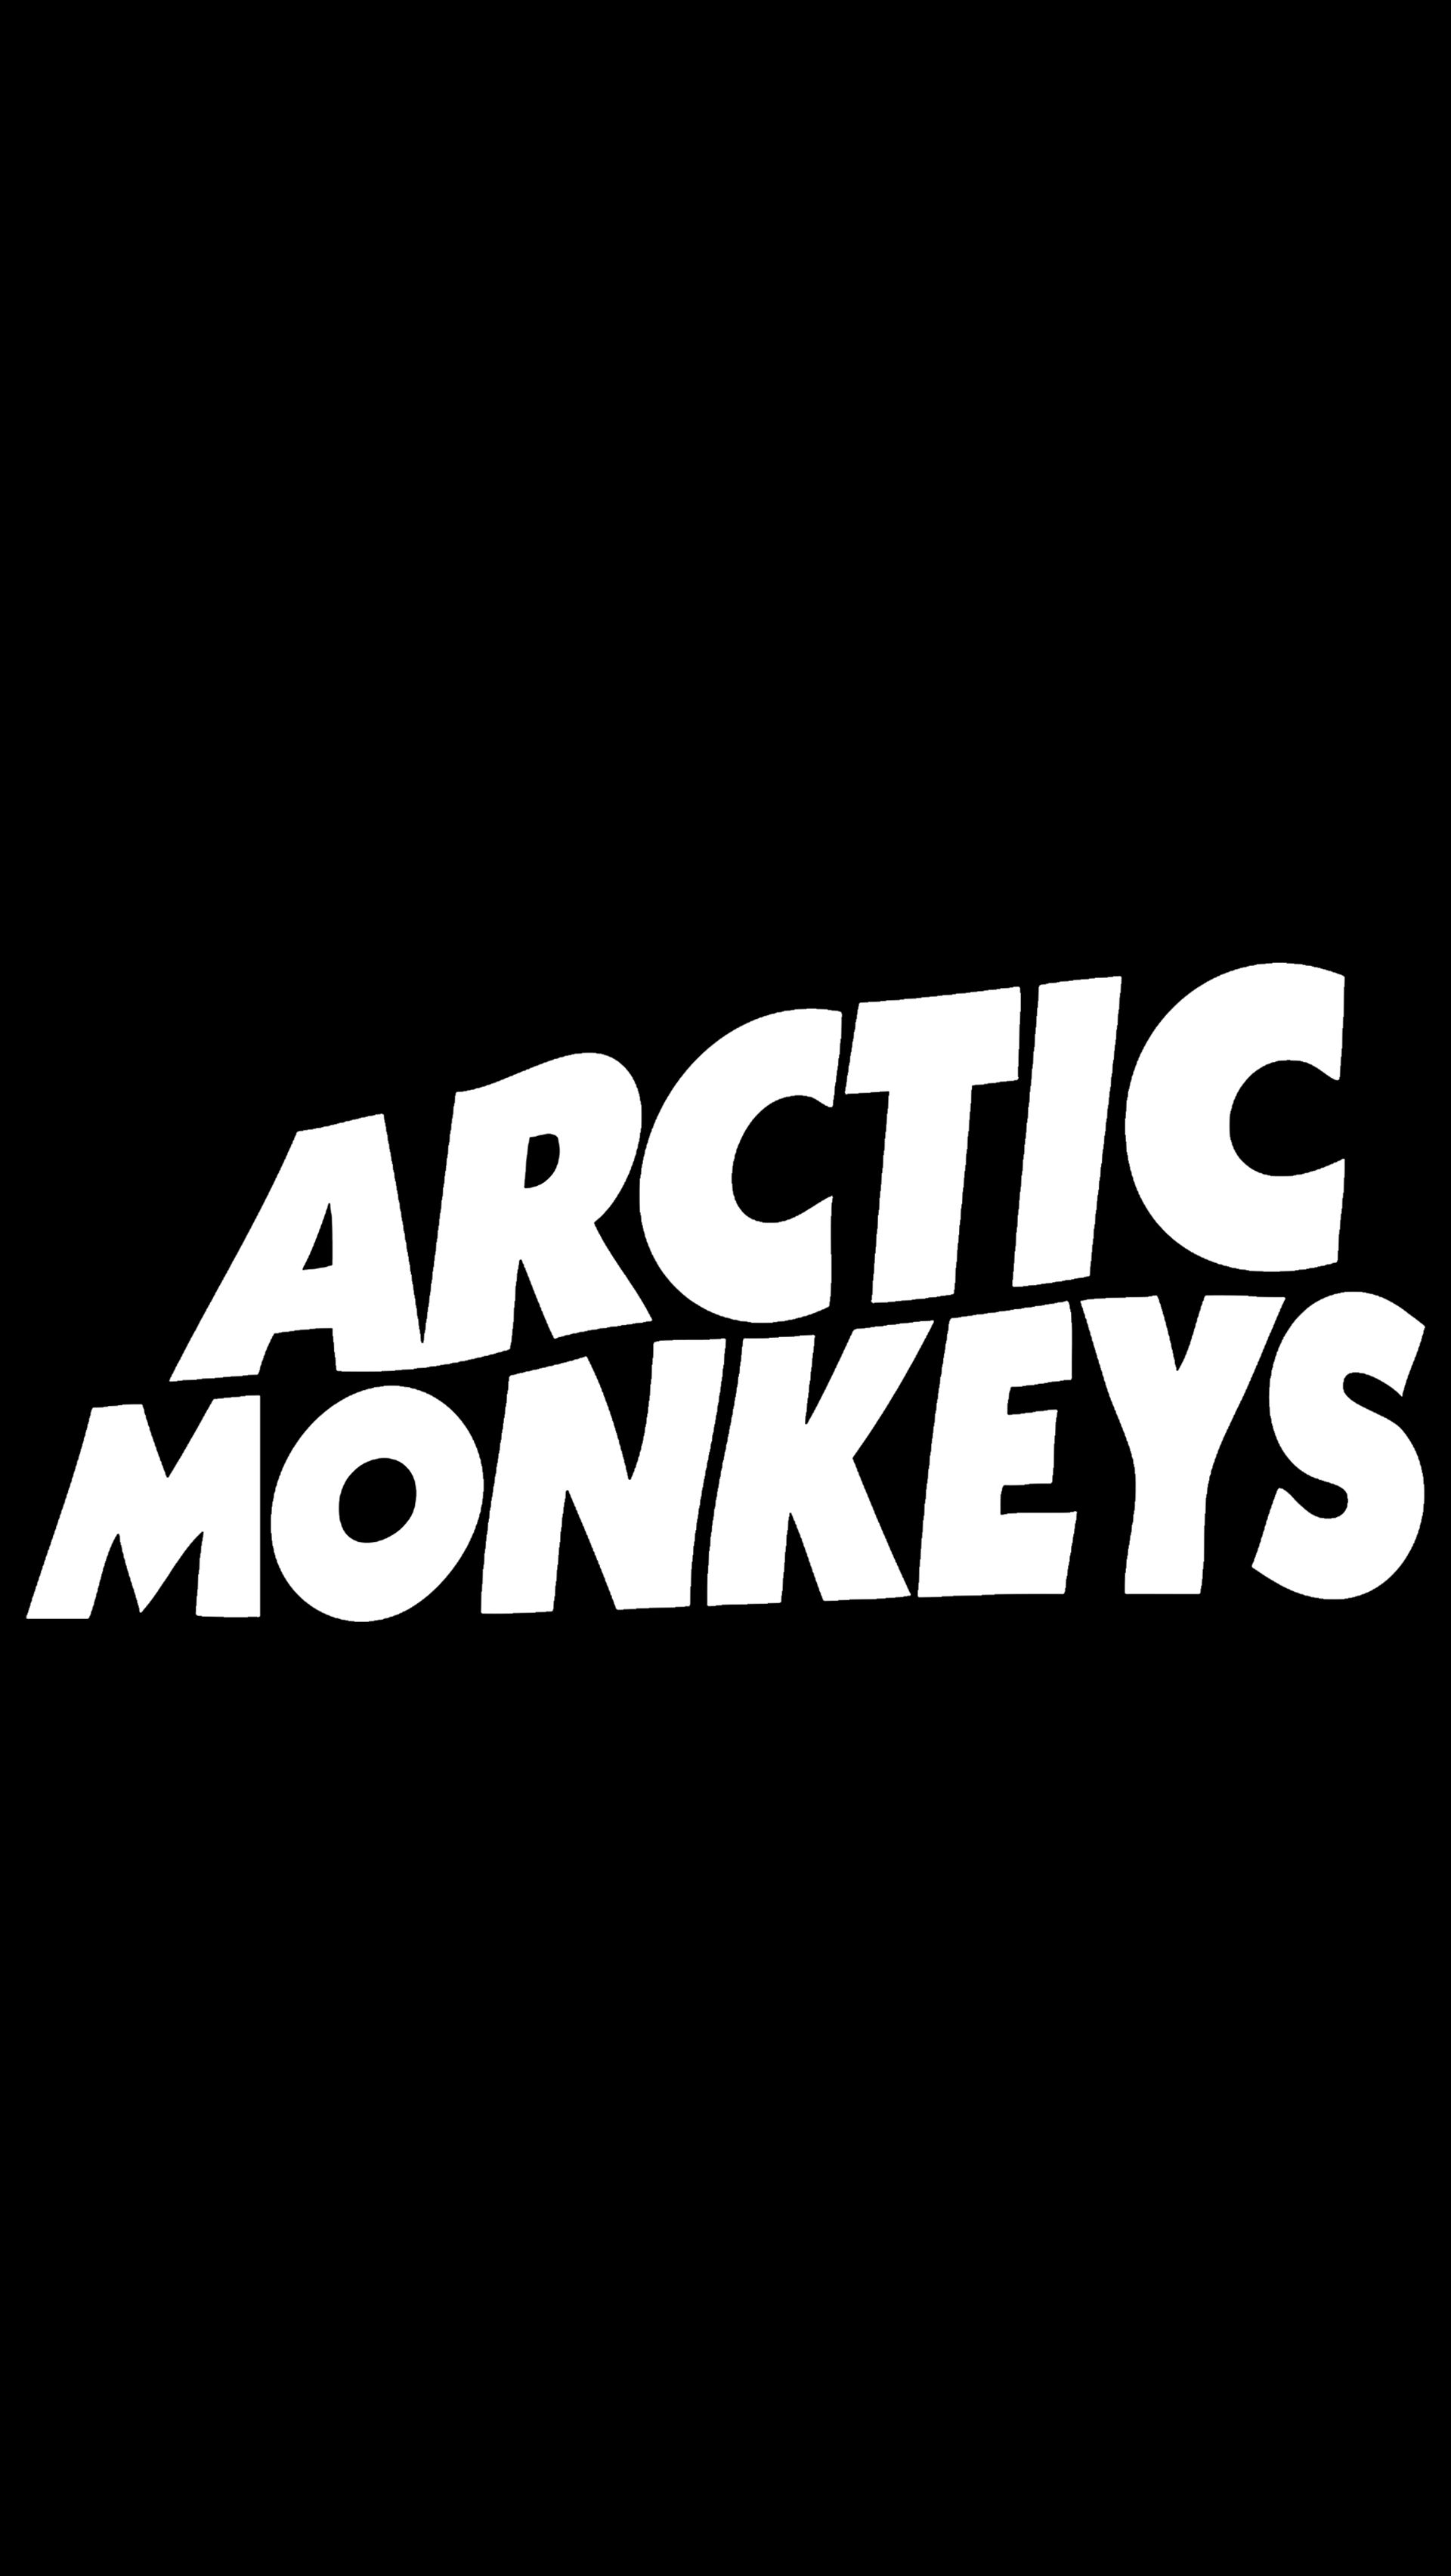 Hey R Arcticmonkeys Thought You D Like My New Home Screen Layout R Arcticmonkeys Arctic Monkeys Wallpaper Arctic Monkeys Arctic